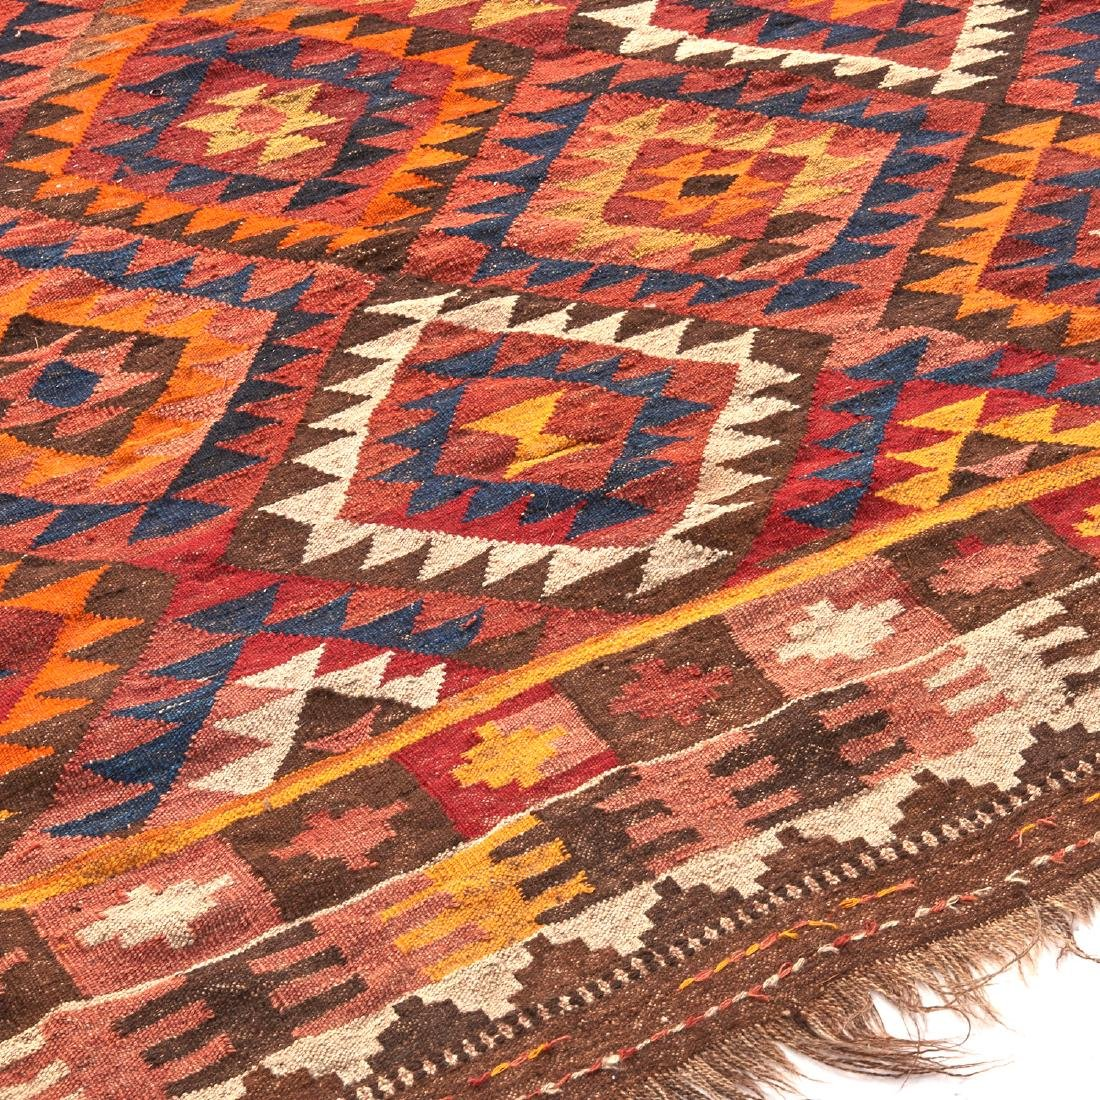 Large Afghani kilim carpet - 4